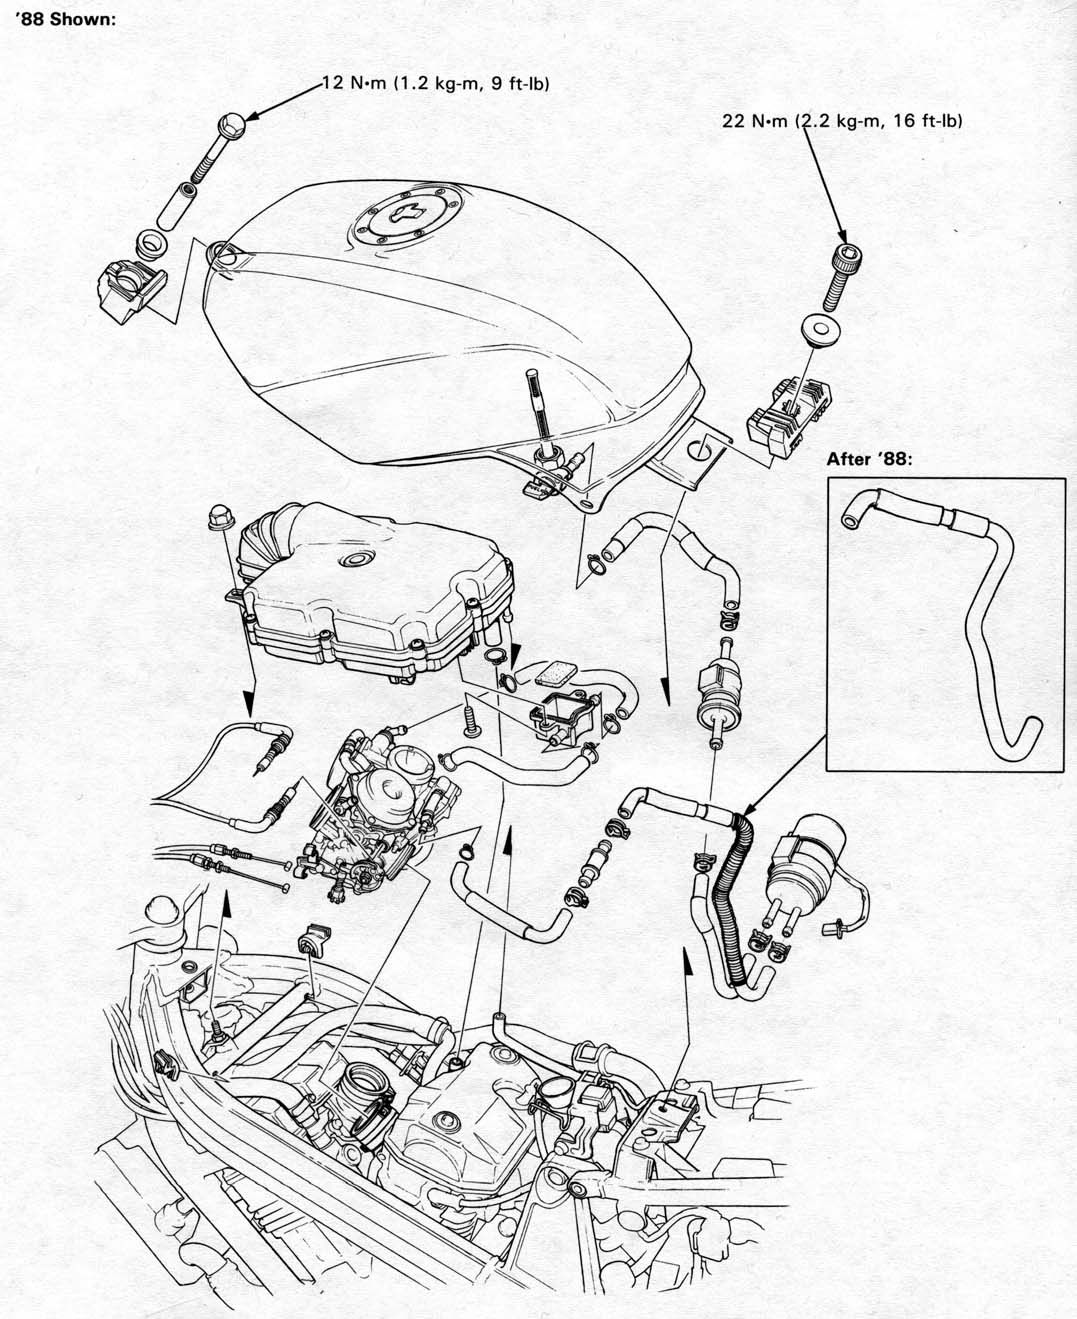 Honda deauville 650 wiring diagram wheretobeco honda nt650 service manual section 4 fuel system